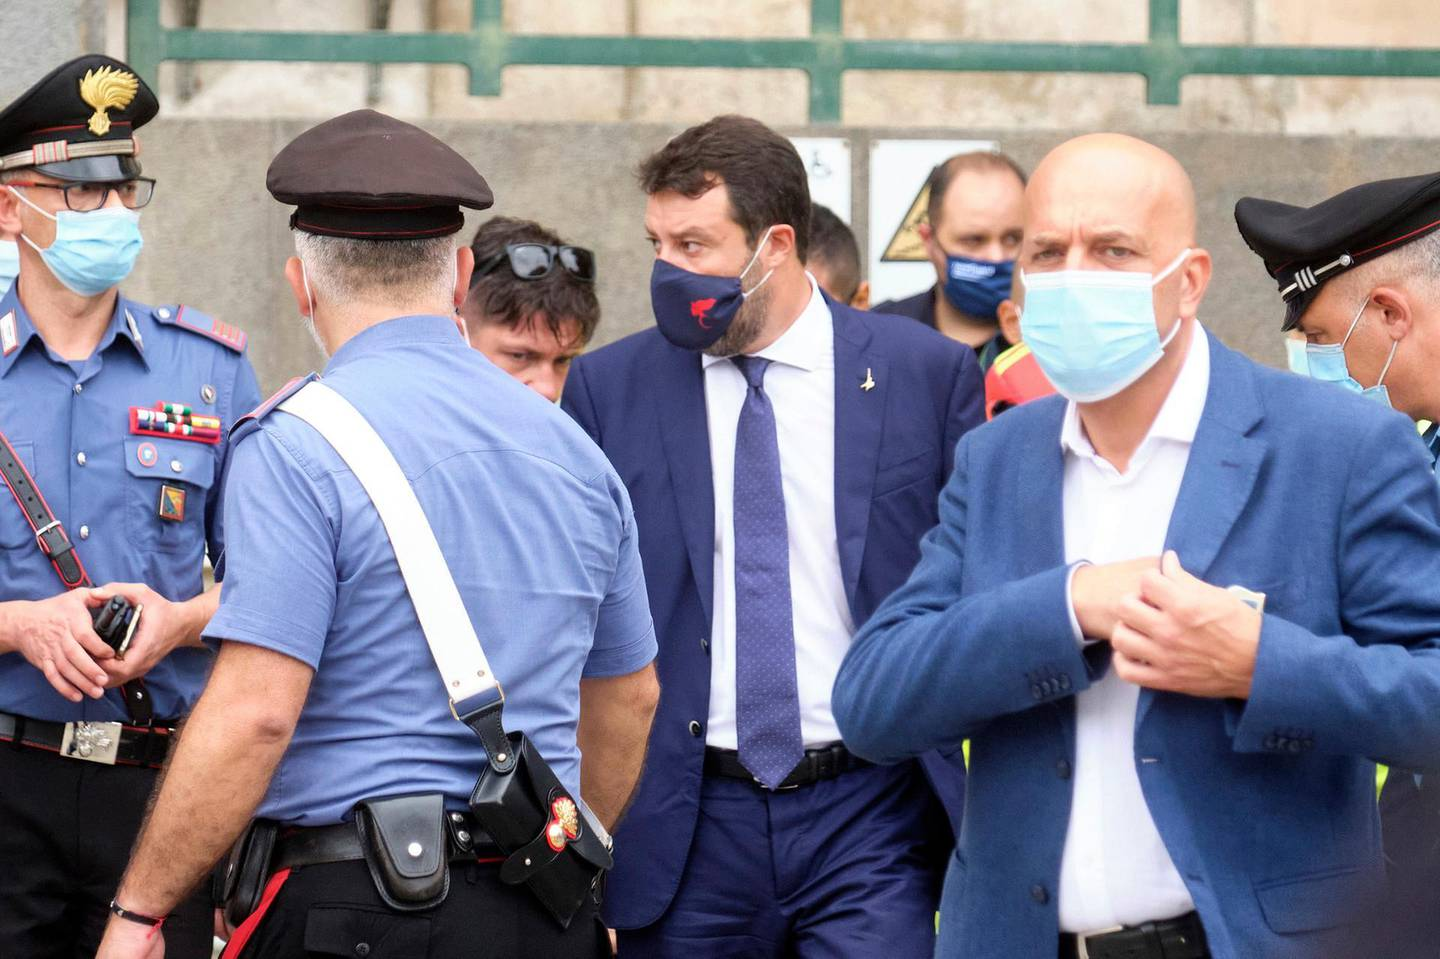 The League's leader Matteo Salvini, center wearing a face mask, leaves after a hearing in court in the Sicilian city of Catania, southern Italy, Saturday, Oct. 3, 2020. Italy's right-wing former interior minister Salvini, appeared Saturday before a court in Sicily that will decide whether he will face trial for blocking 131 migrants for several days on a coast guard ship in 2019.  (Mauro Scrobogna/LaPresse via AP)